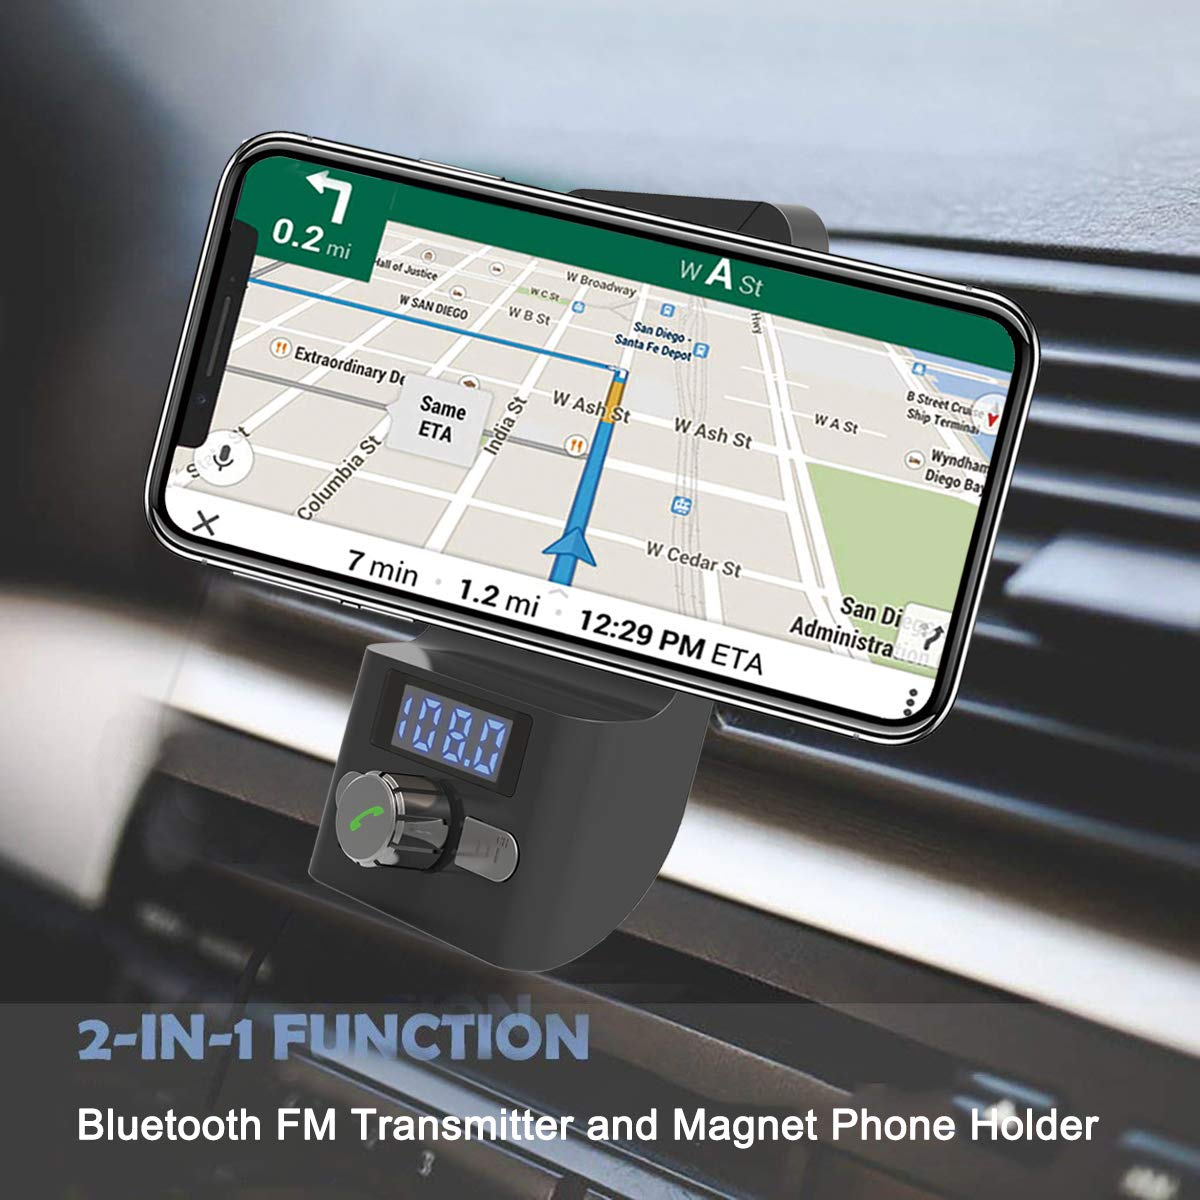 Magnetic Cell Phone Holder/for iPhone/X//Xs//XR//Xs Max//8//8Plus,Galaxy S10//S9//S8//S7//Note 9//8 Sony Nokia,BlackBerry and More Bluetooth FM Transmitter Nexus Handsfree Bluetooth Car Phone Mount